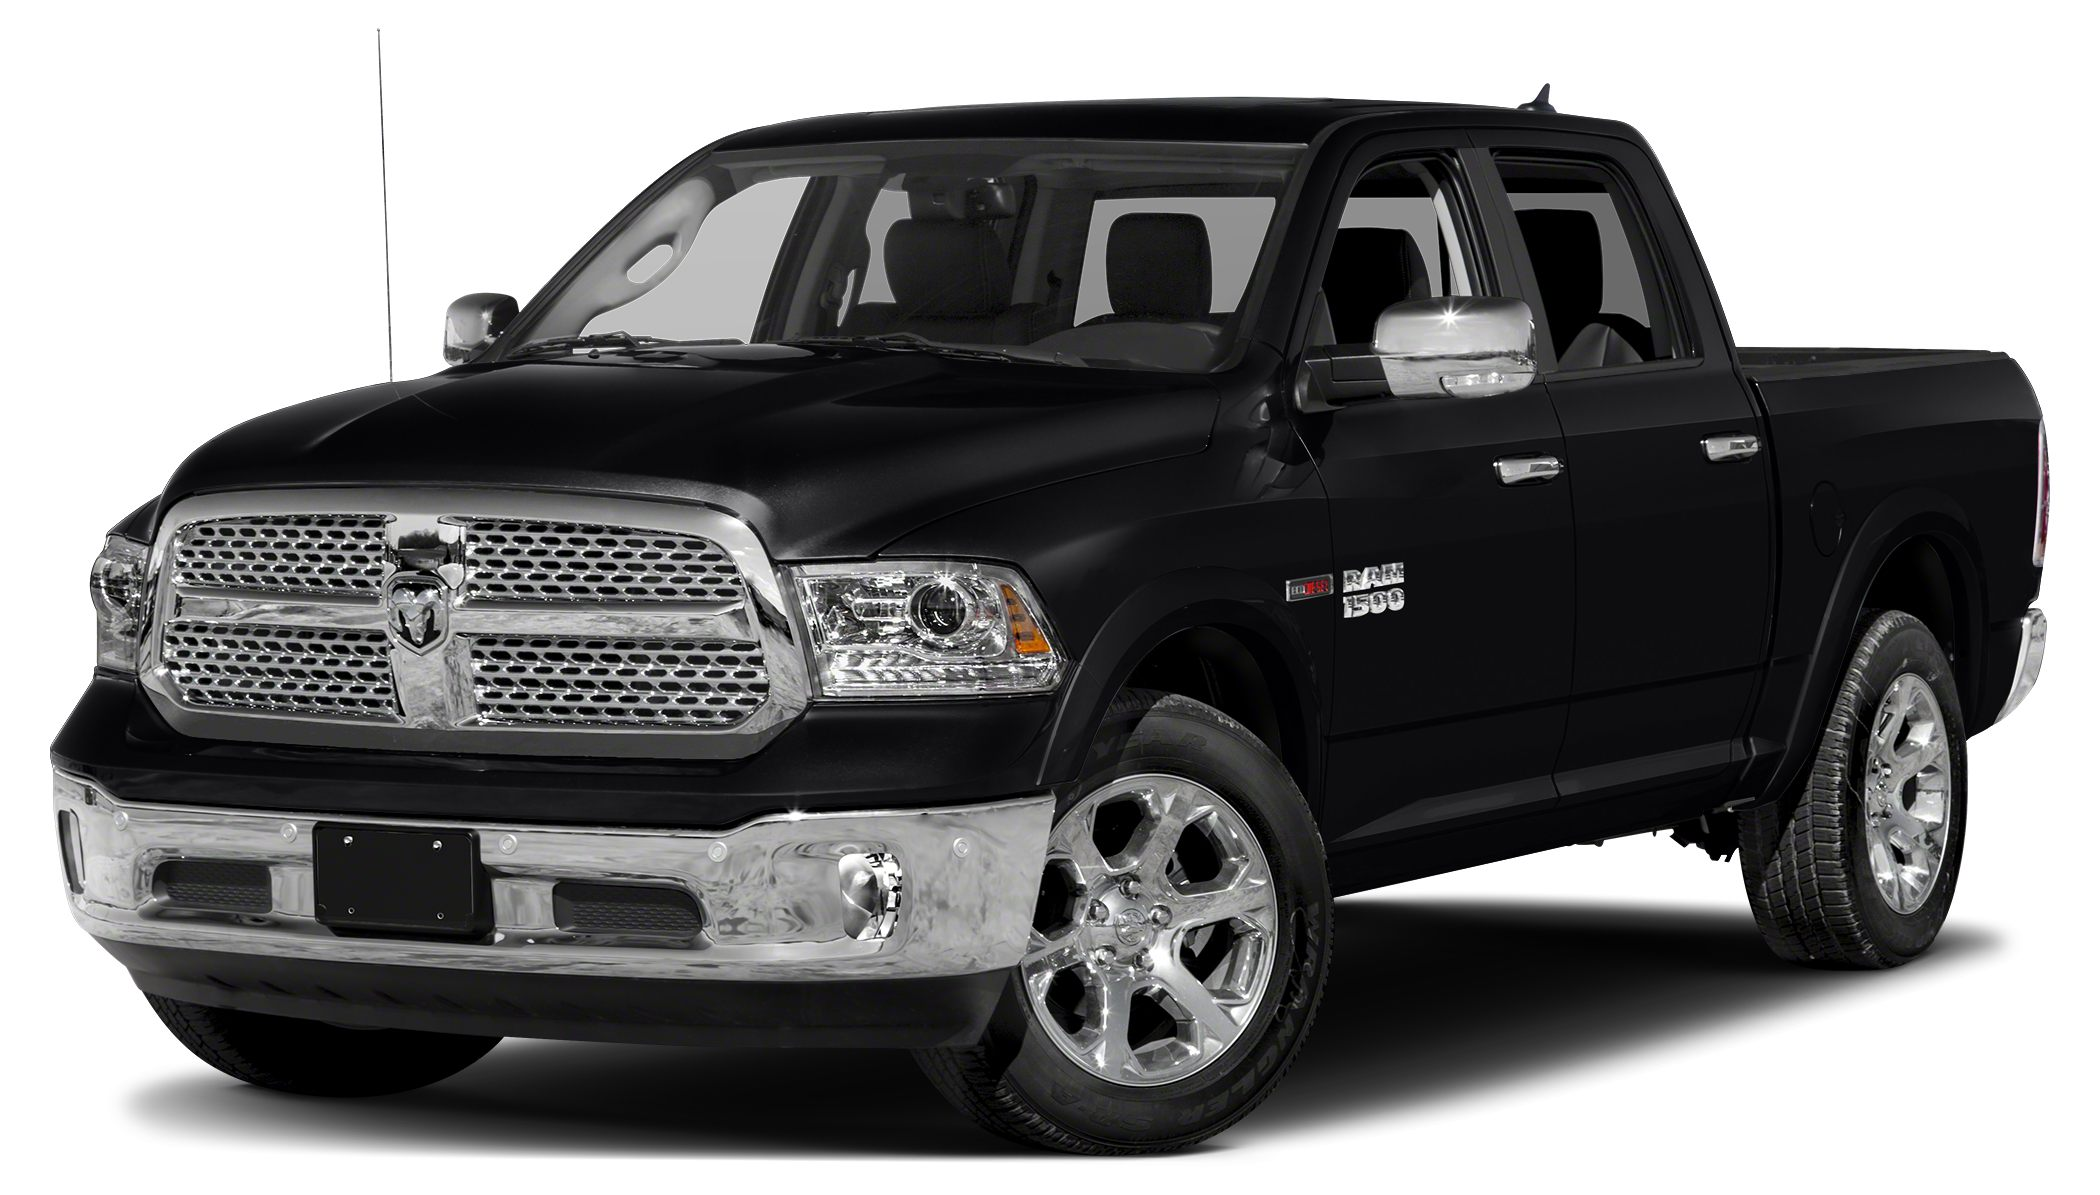 2014 RAM 1500 Laramie Lake Keowee Chrysler Dodge Jeep is honored to present a wonderful example of